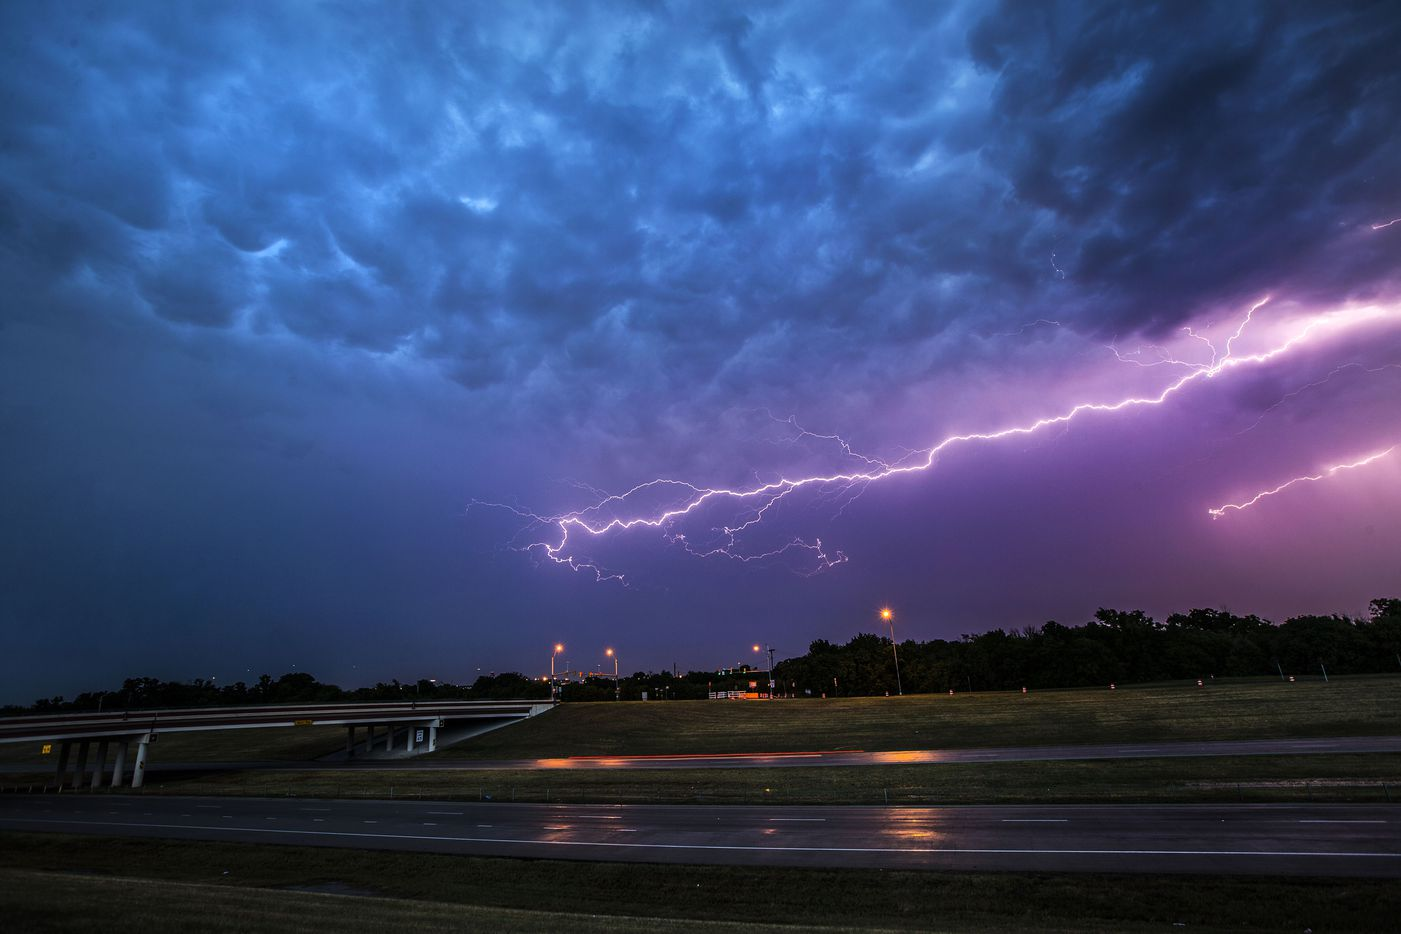 Lightning bolts fill the sky over highway 360 near Euless, Texas on Friday, June 2, 2017. (Ryan Michalesko/The Dallas Morning News)